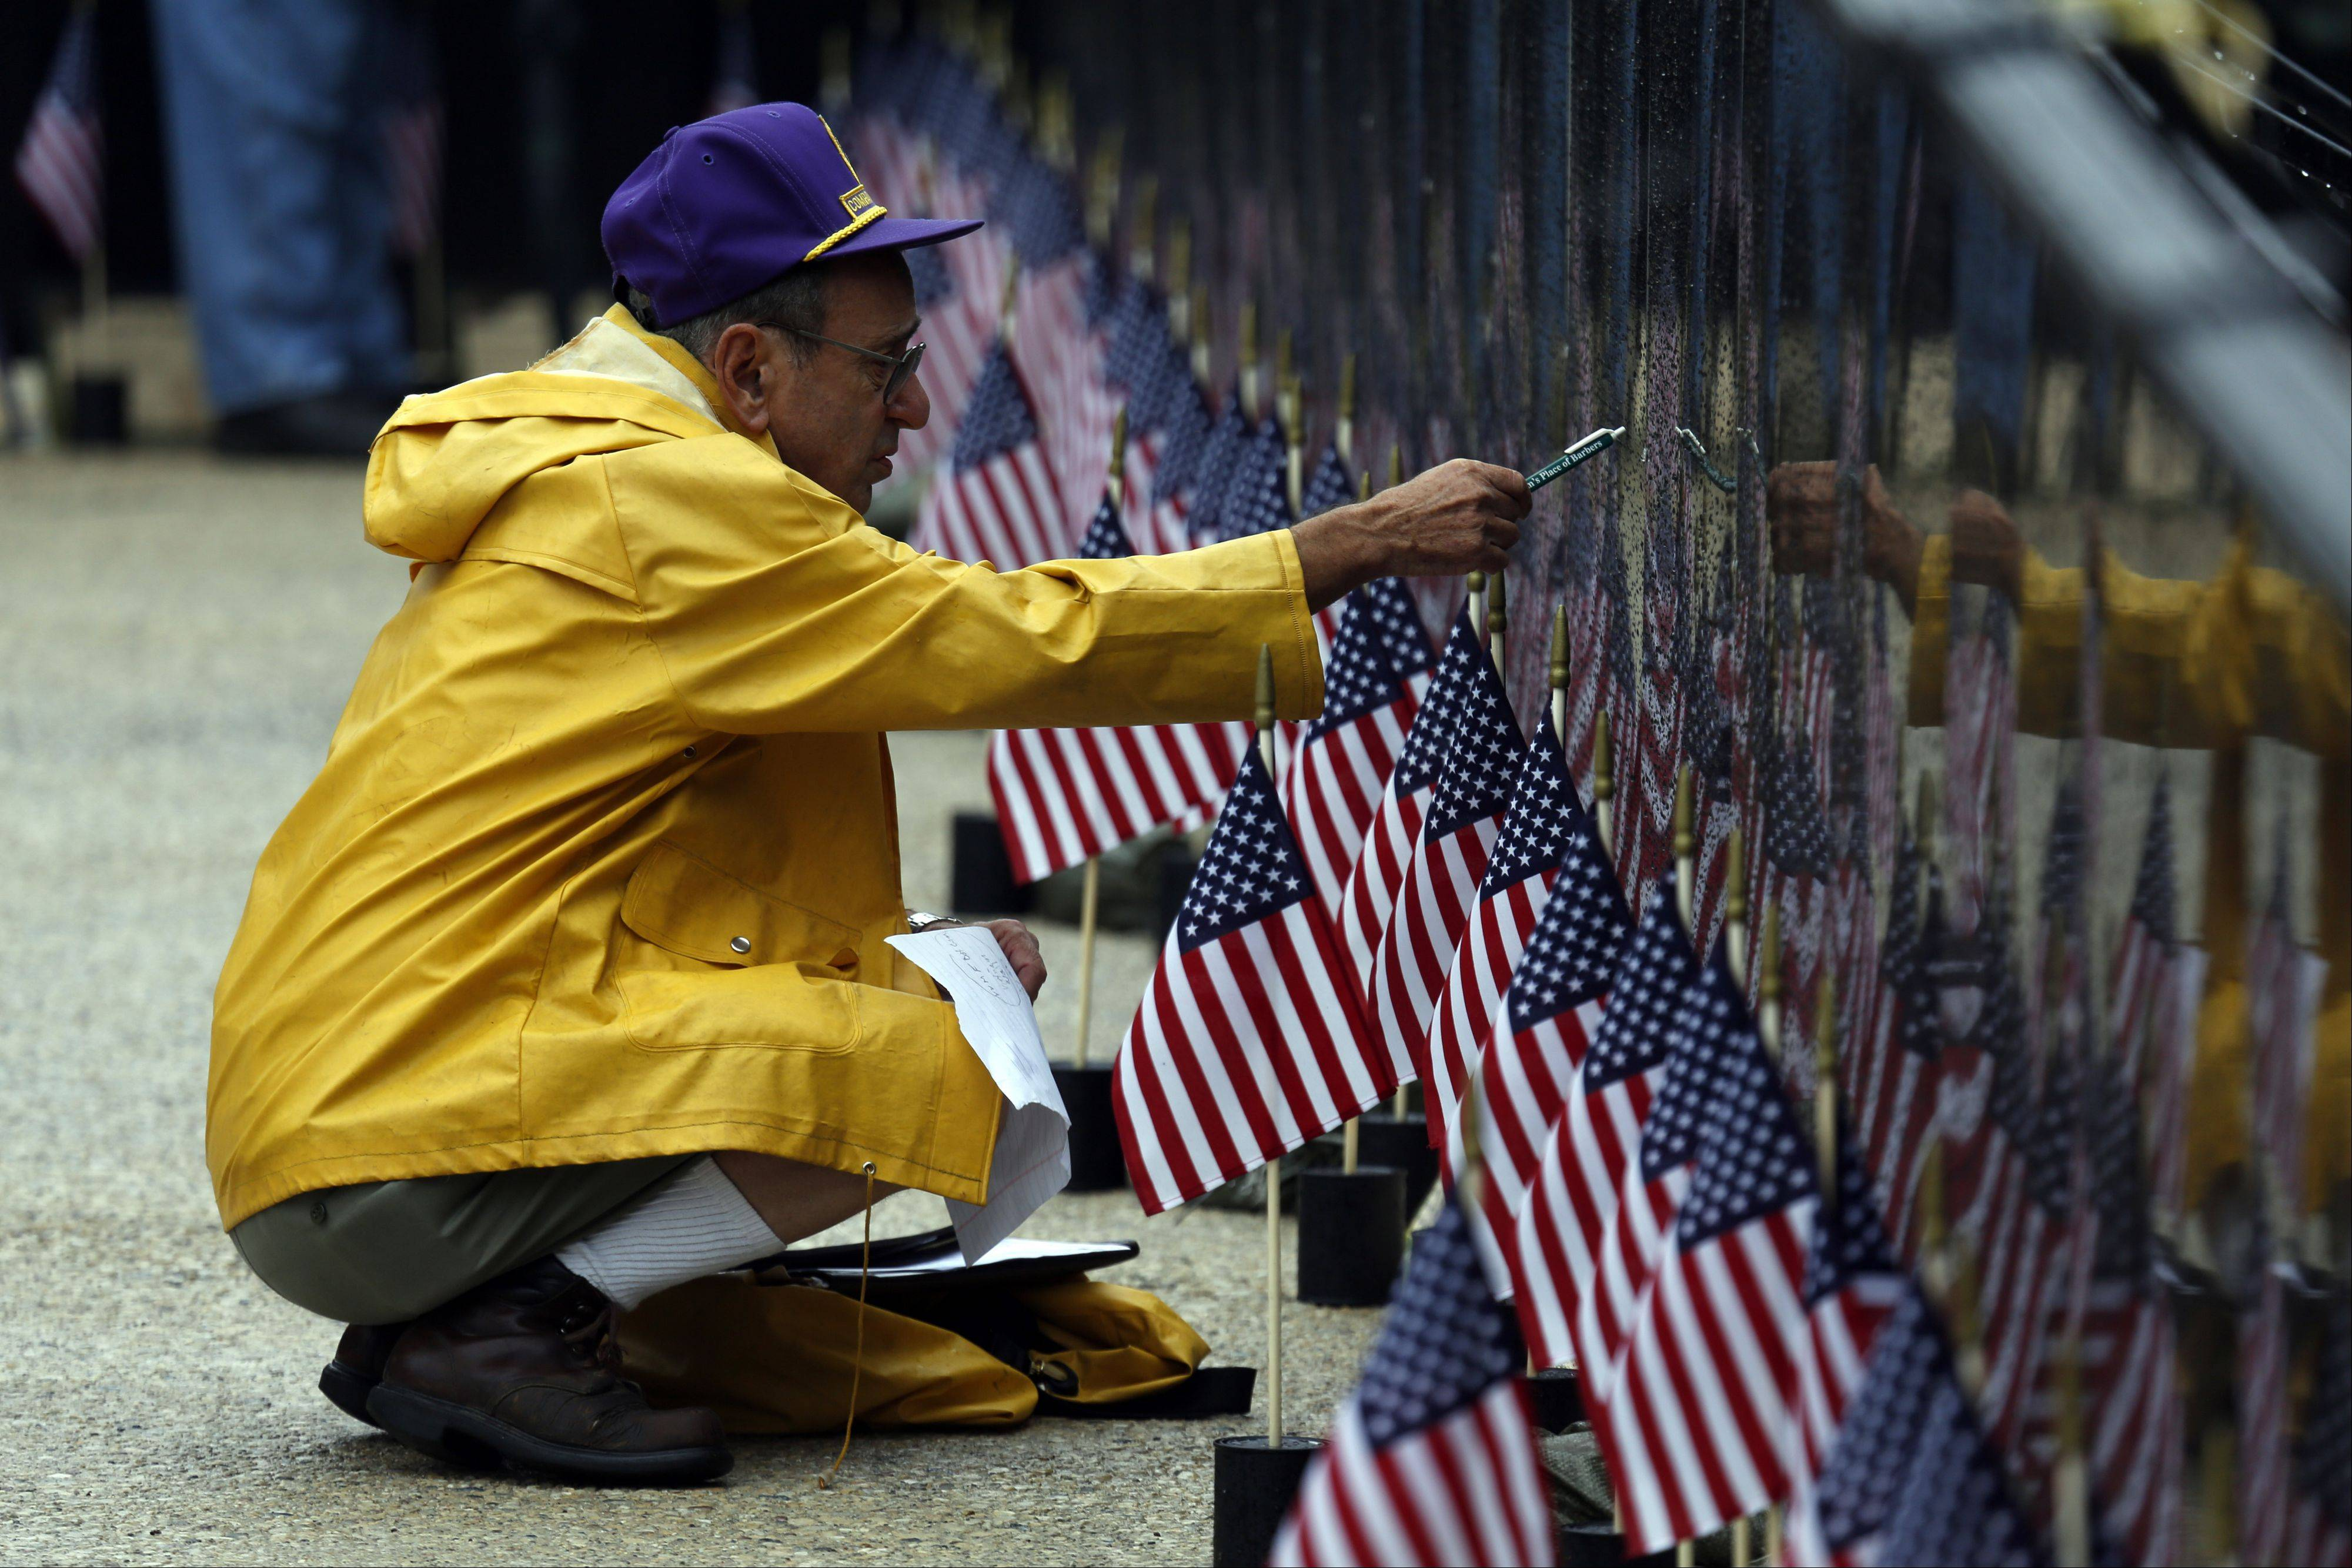 Charles Fox of Elgin, who served in the Army 1st Battalion, 26th Infantry in 1967-68, looks at the wall for the names of his 18 friends killed in one day.